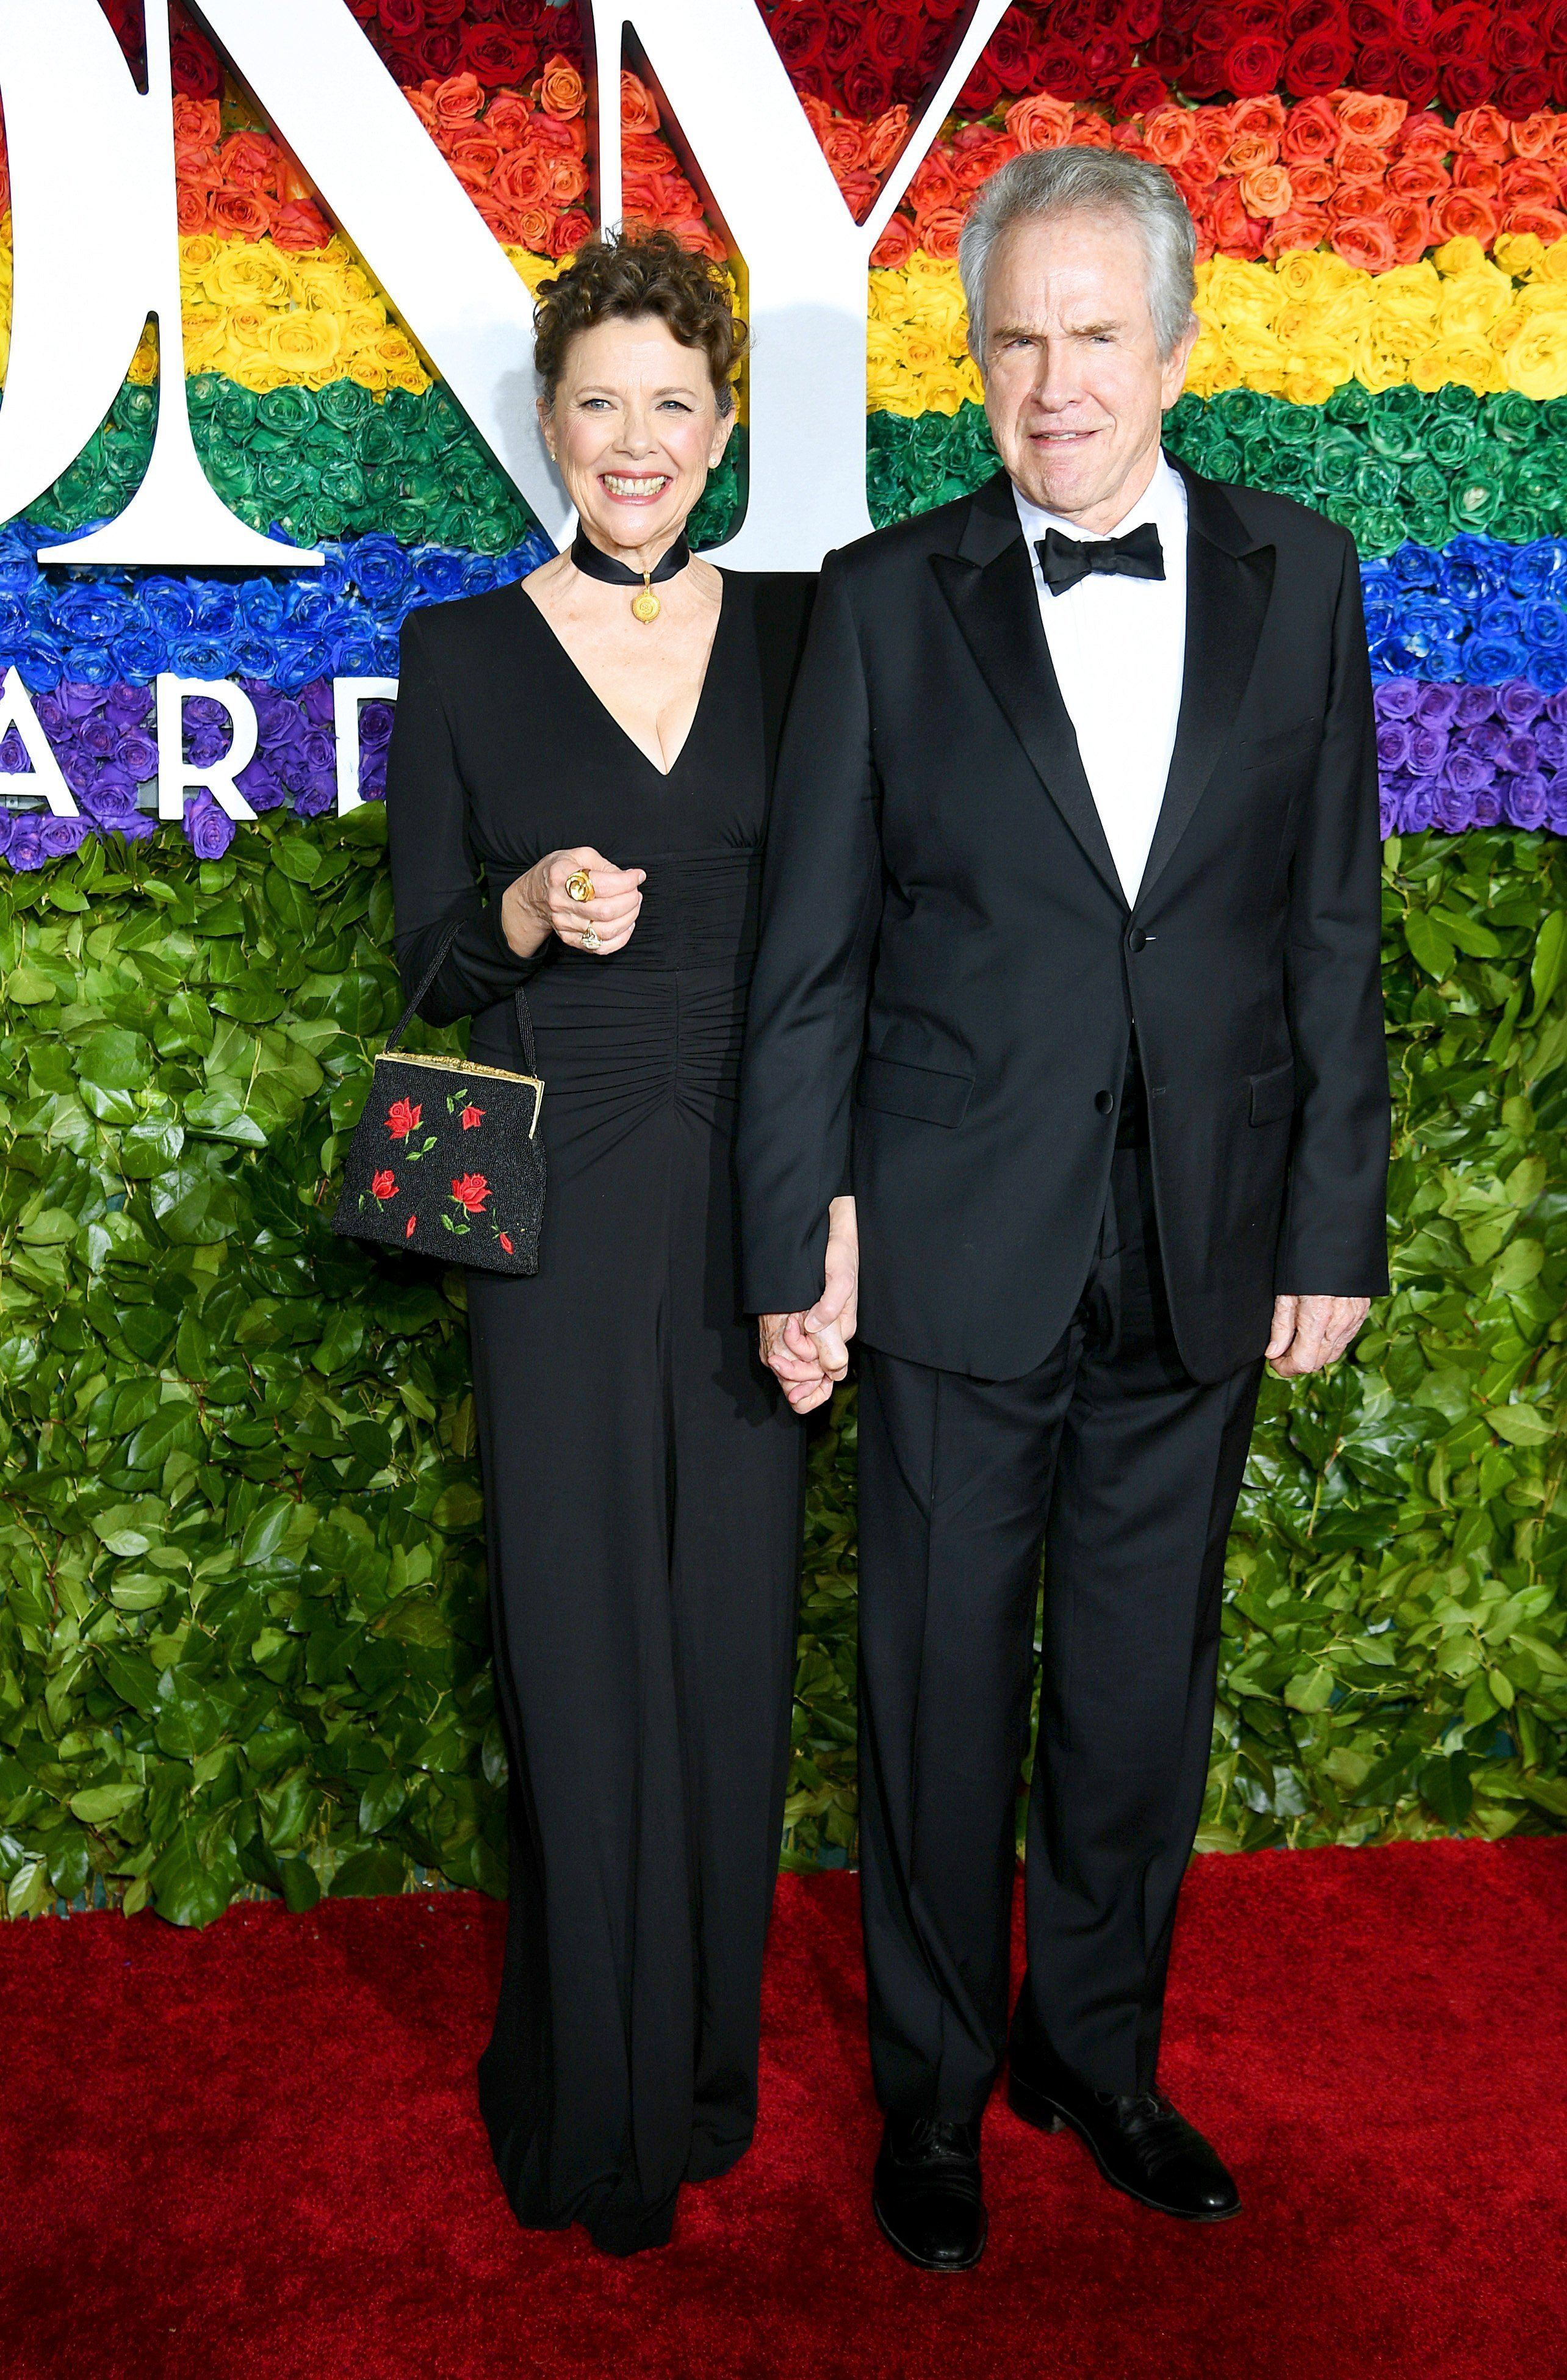 Annette Bening and Warren Beatty attends the 73rd Annual Tony Awards at Radio City Music Hall on June 09, 2019, in New York City | Photo: Getty Images.